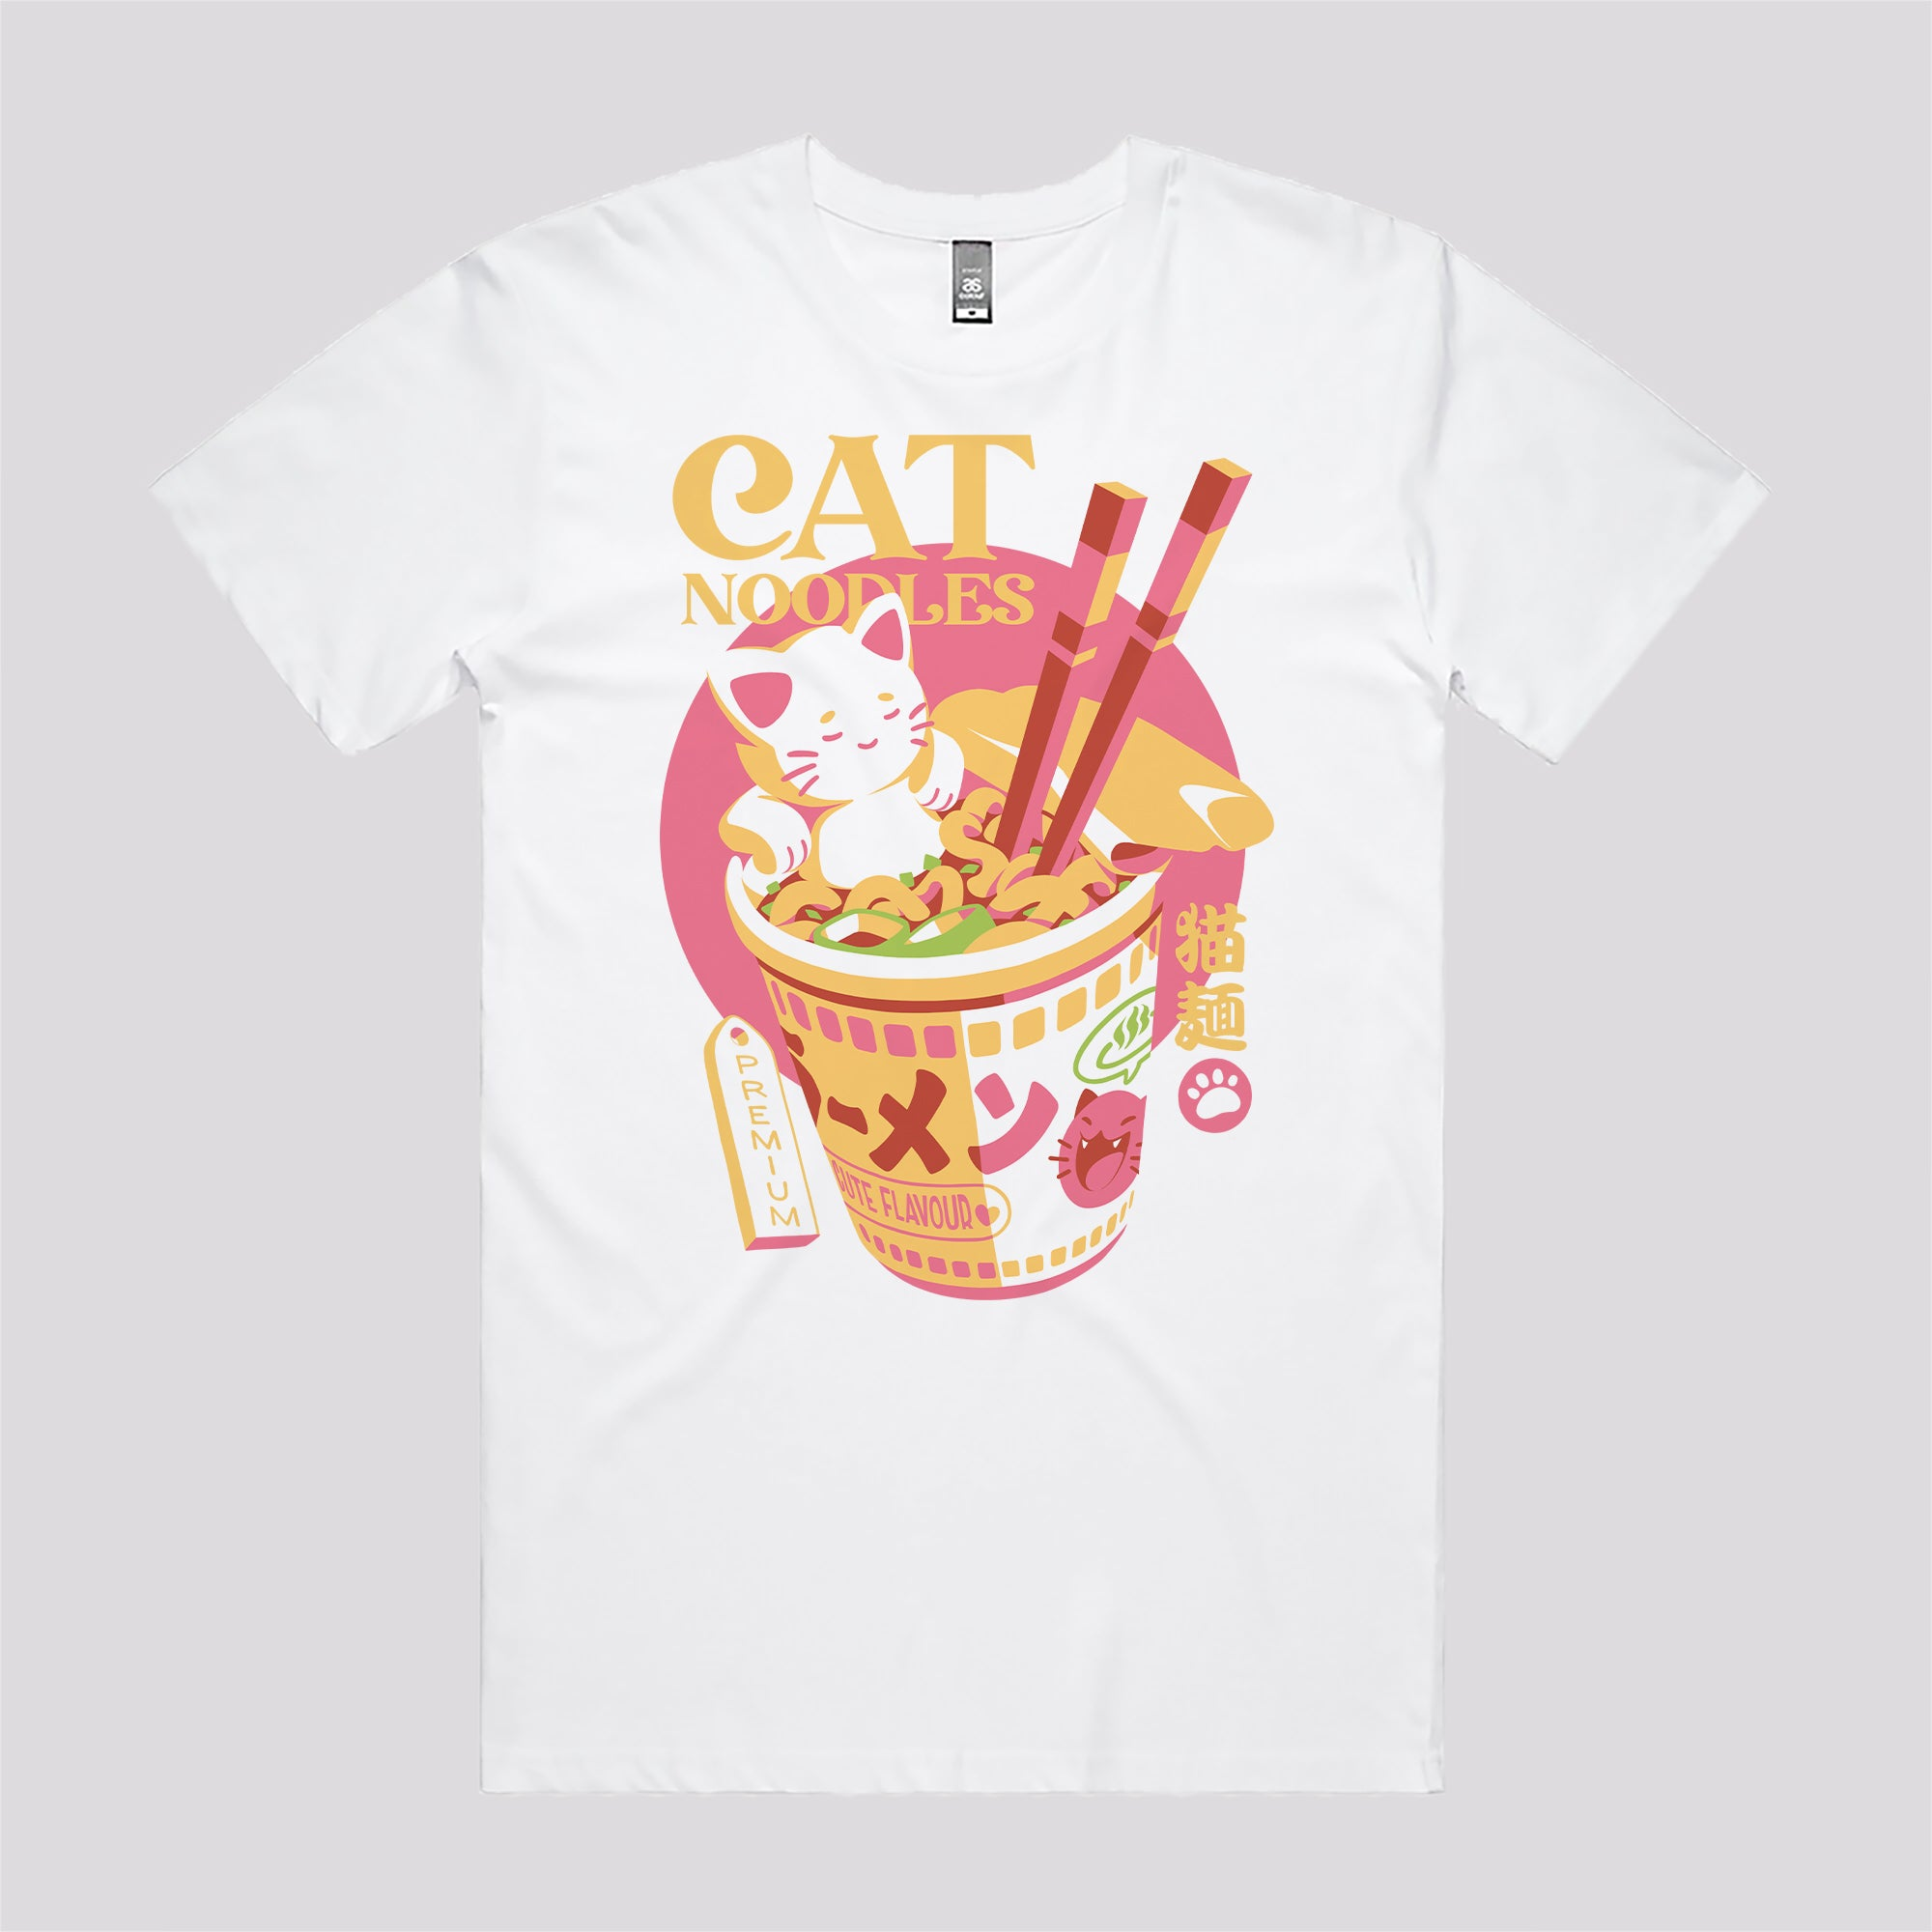 Cat Noodles T-Shirt